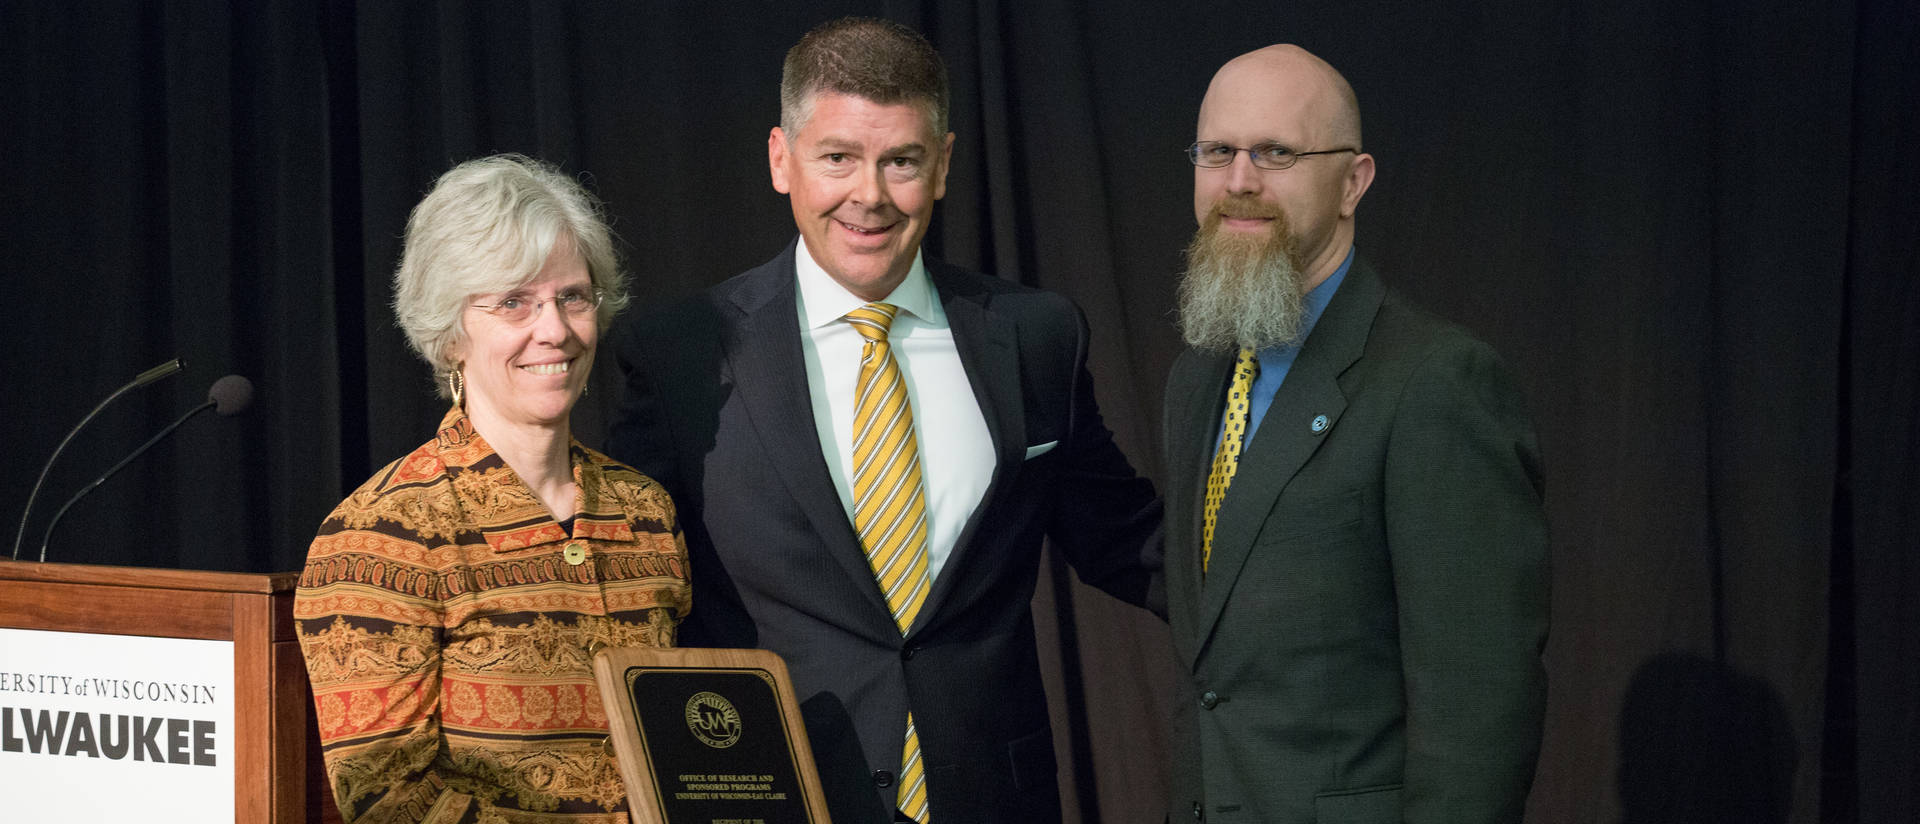 UW-Eau Claire's Karen Havholm, Assistant Vice Chancellor (left), and Director of Grants and Contracts, Jeremy Miner (right), with Regent Director Drew Peterson (middle)